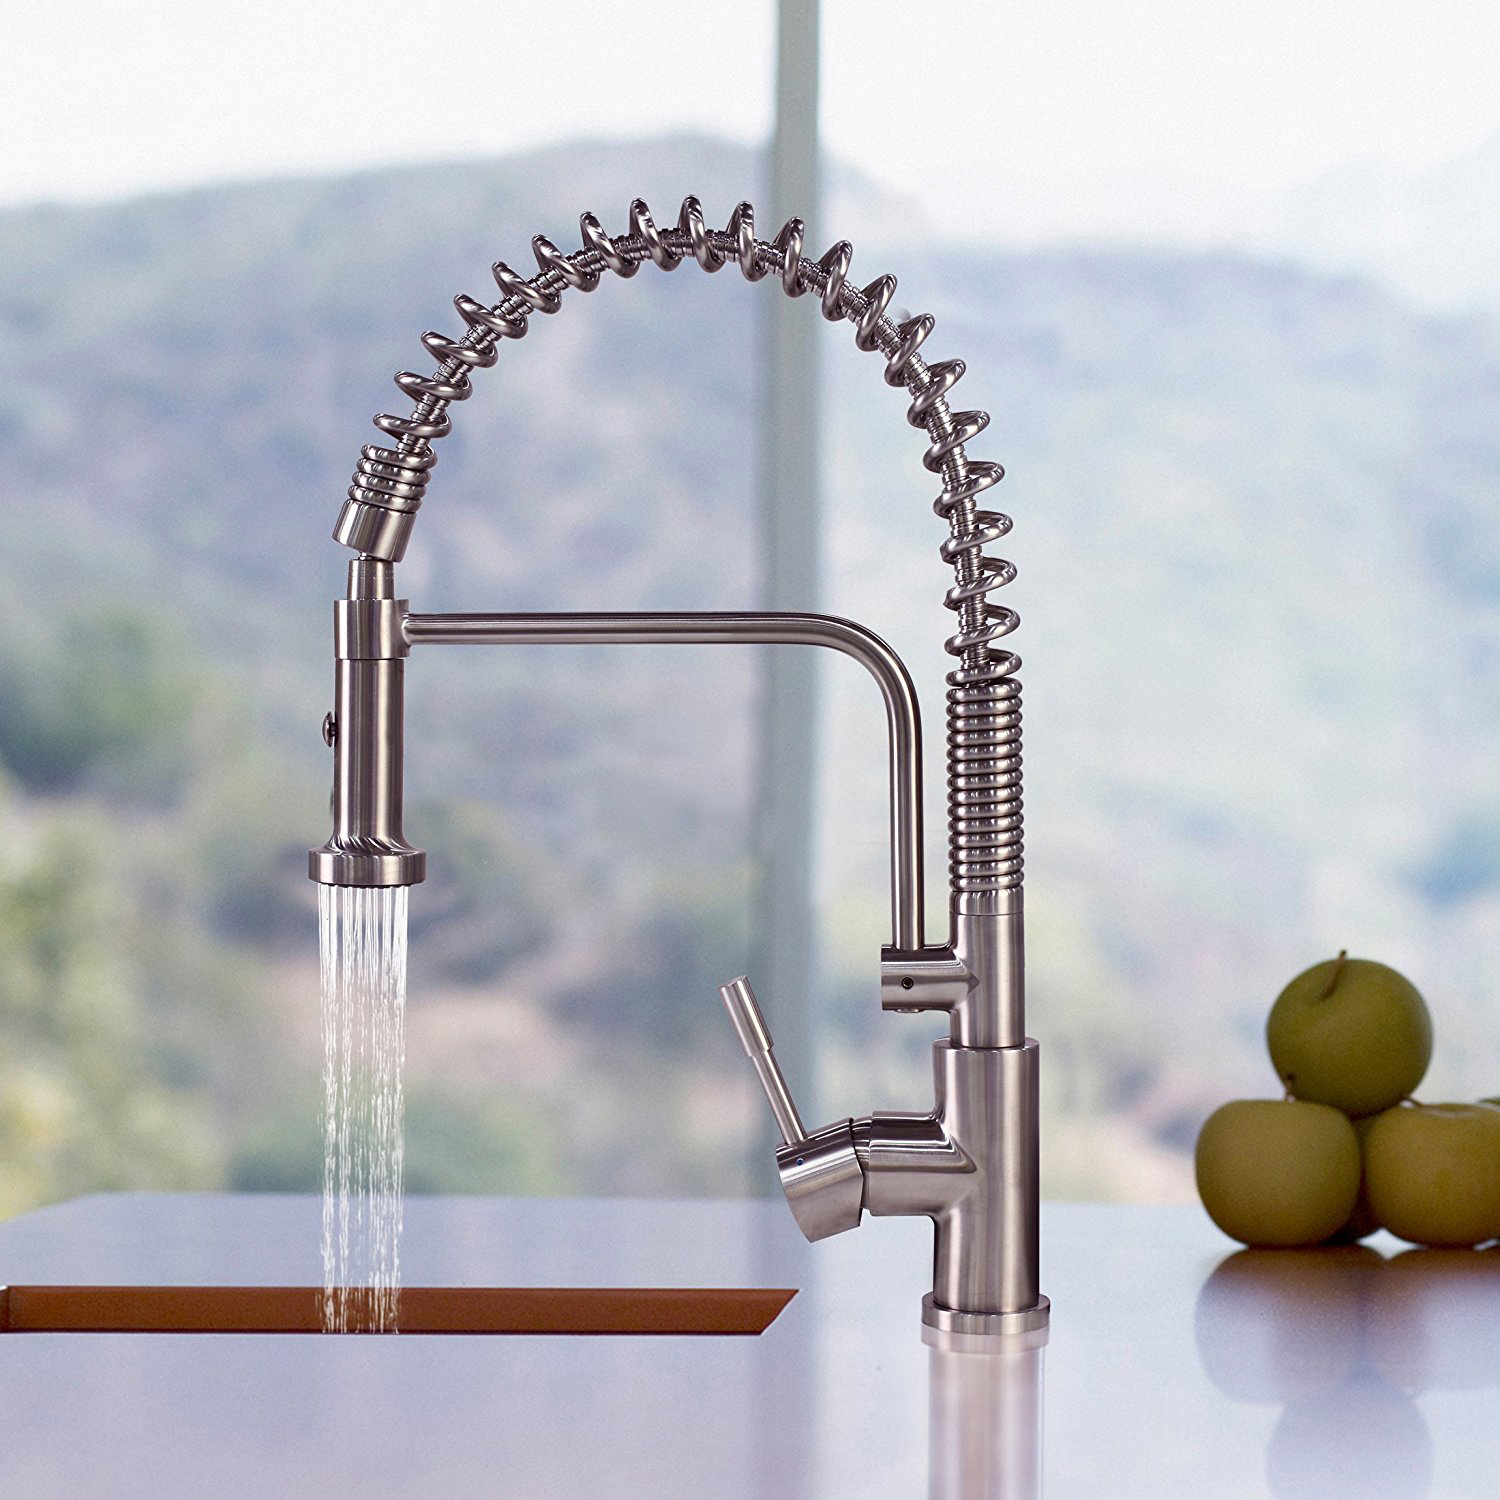 6 Best Touchless Kitchen Faucets - (Reviews & Buying Guide 2018)